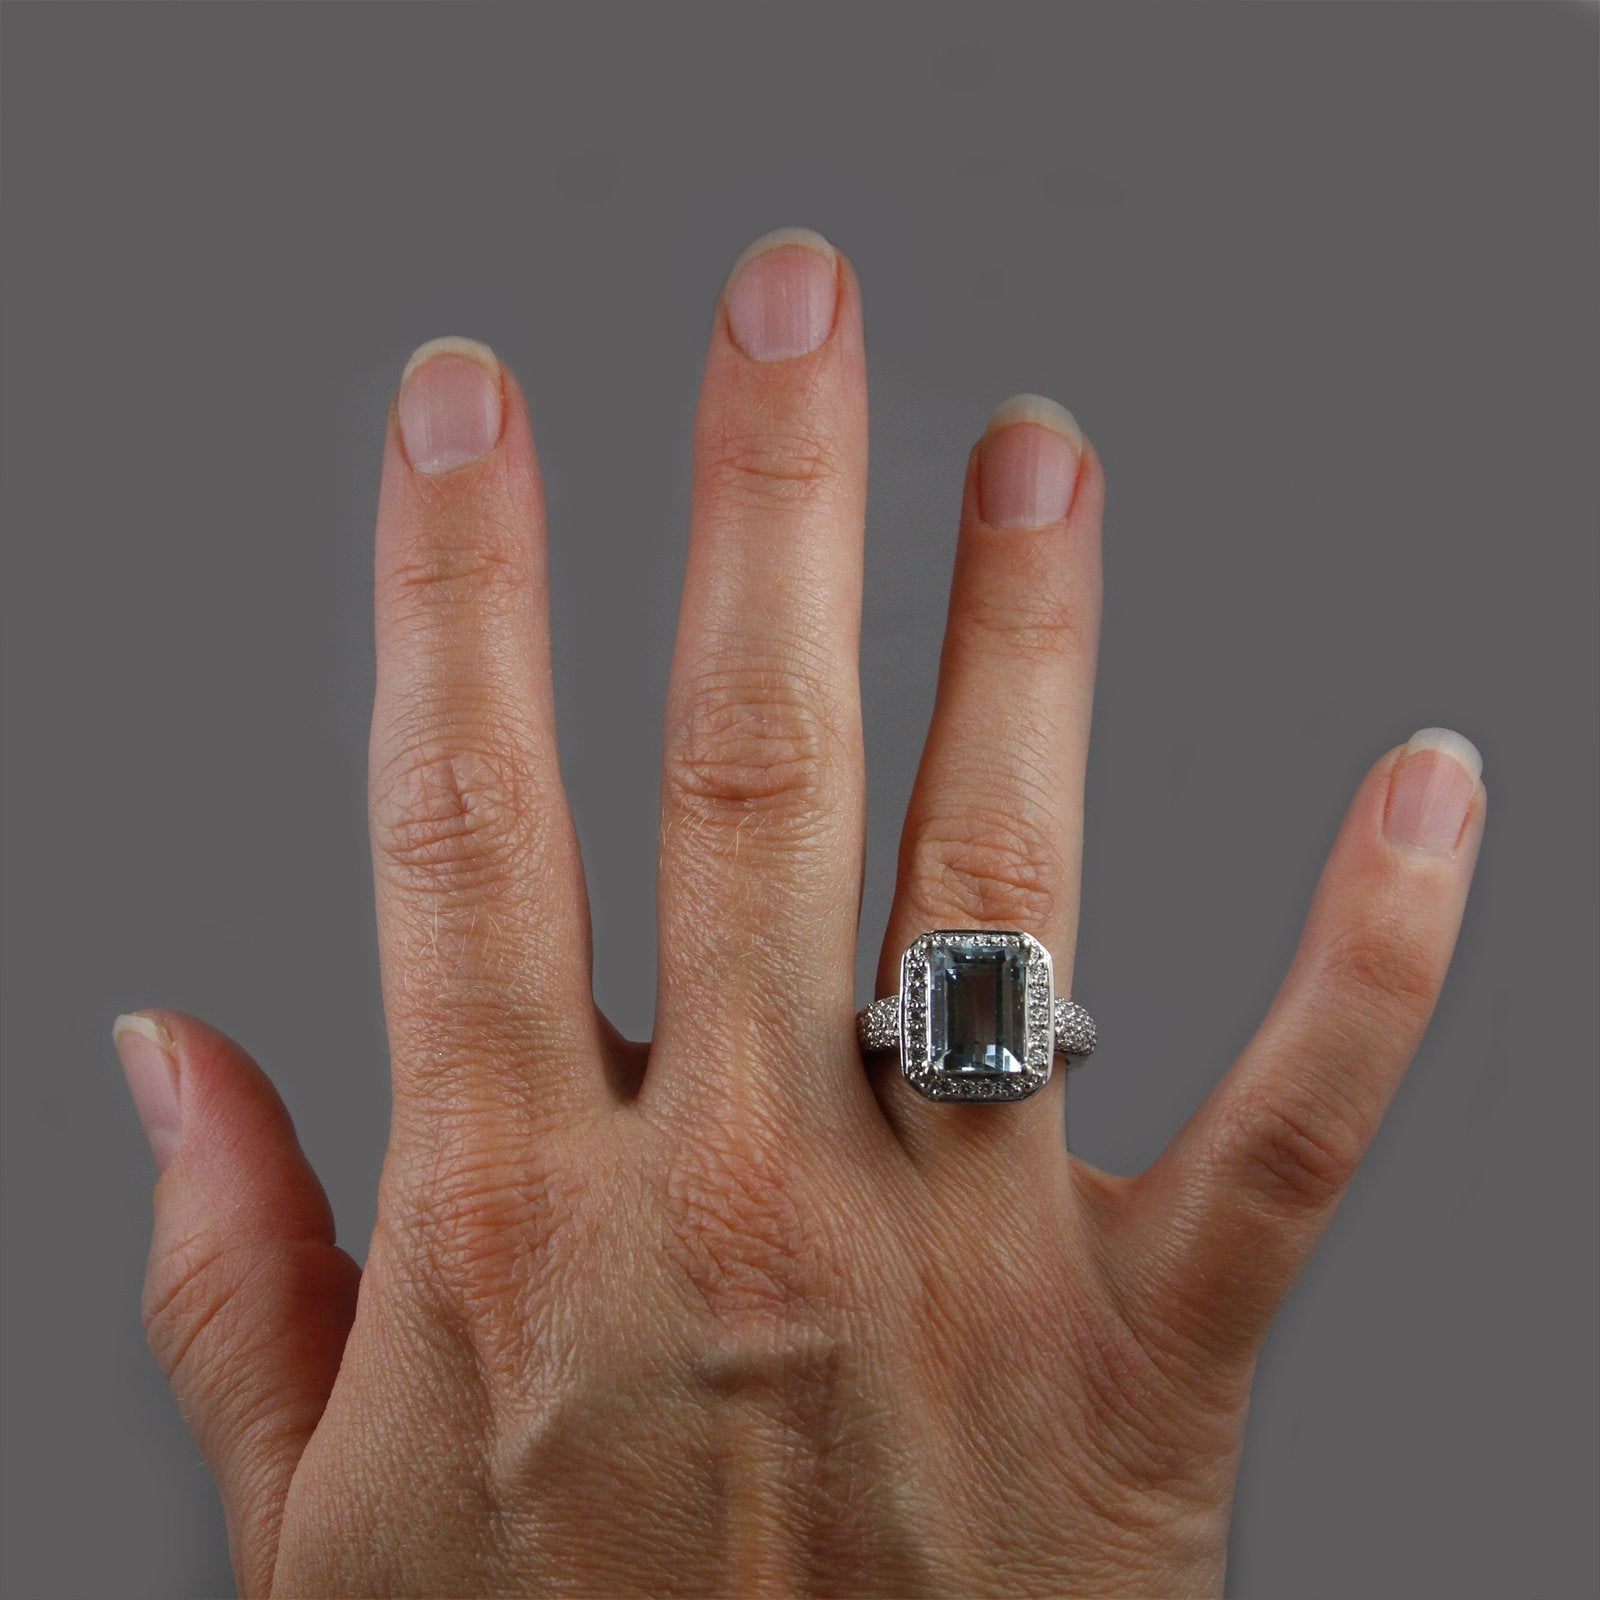 Emerald Cut 4.21ct Aquamarine Ring w/ Round Brilliant Cut Diamond Bezel & Sides in 14k White Gold-3